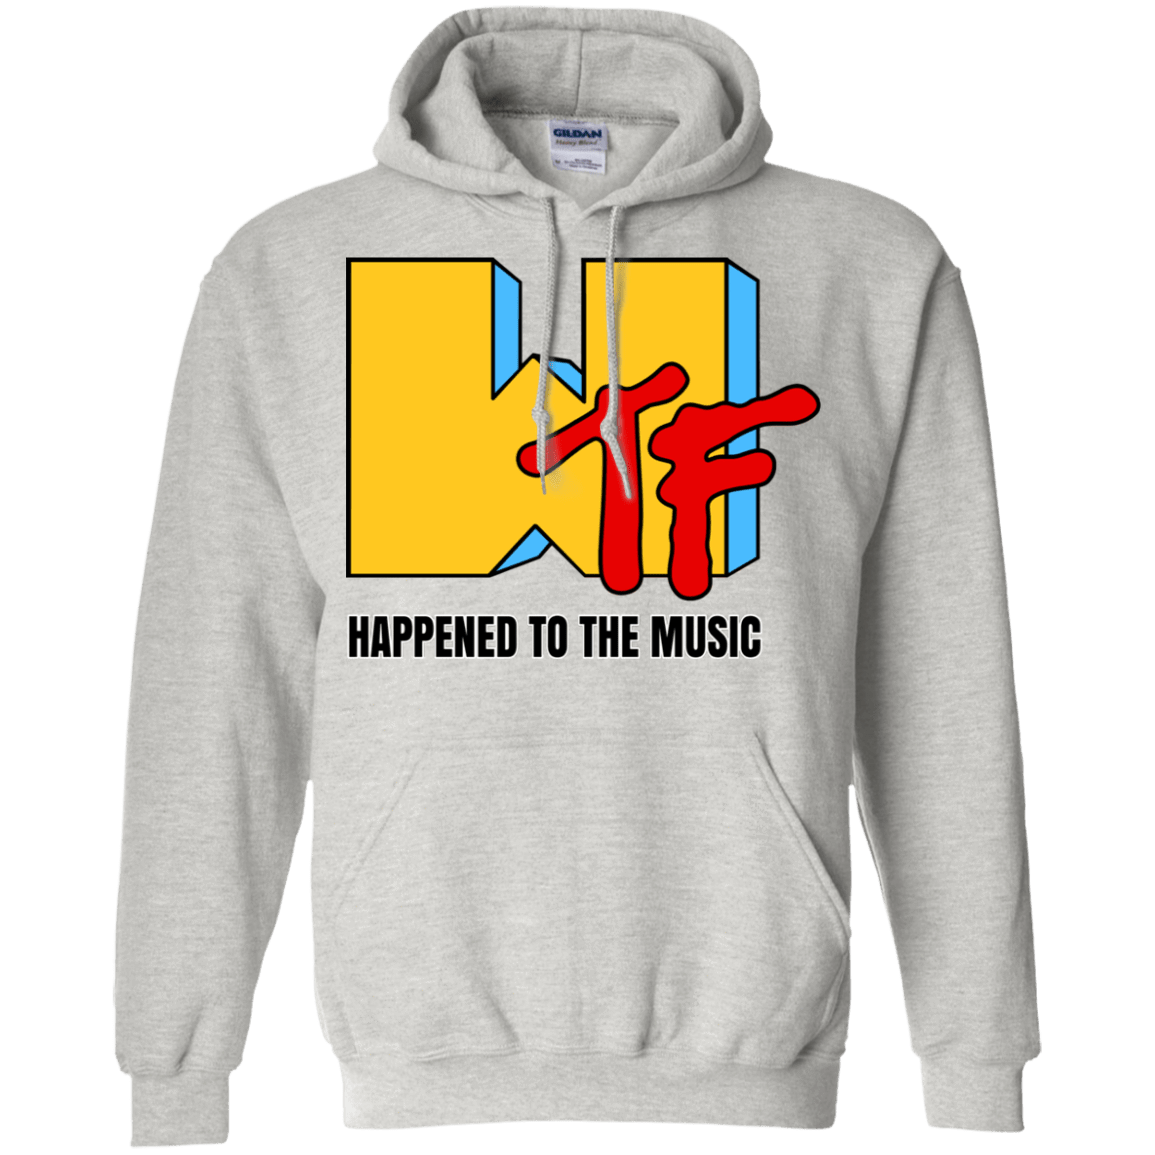 MTF Happend To The Music T-Shirts, Hoodie, Tank 541-4748-78875414-23071 - Tee Ript